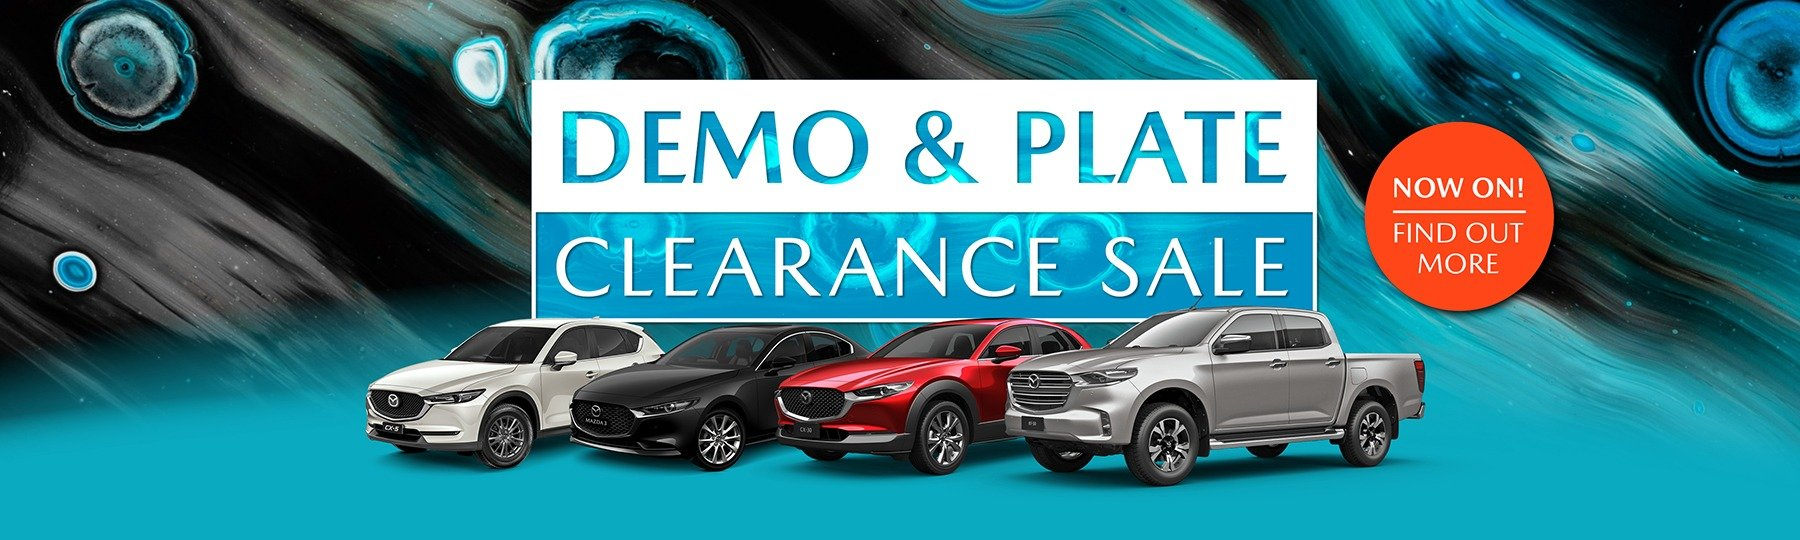 Demo clearance on now!